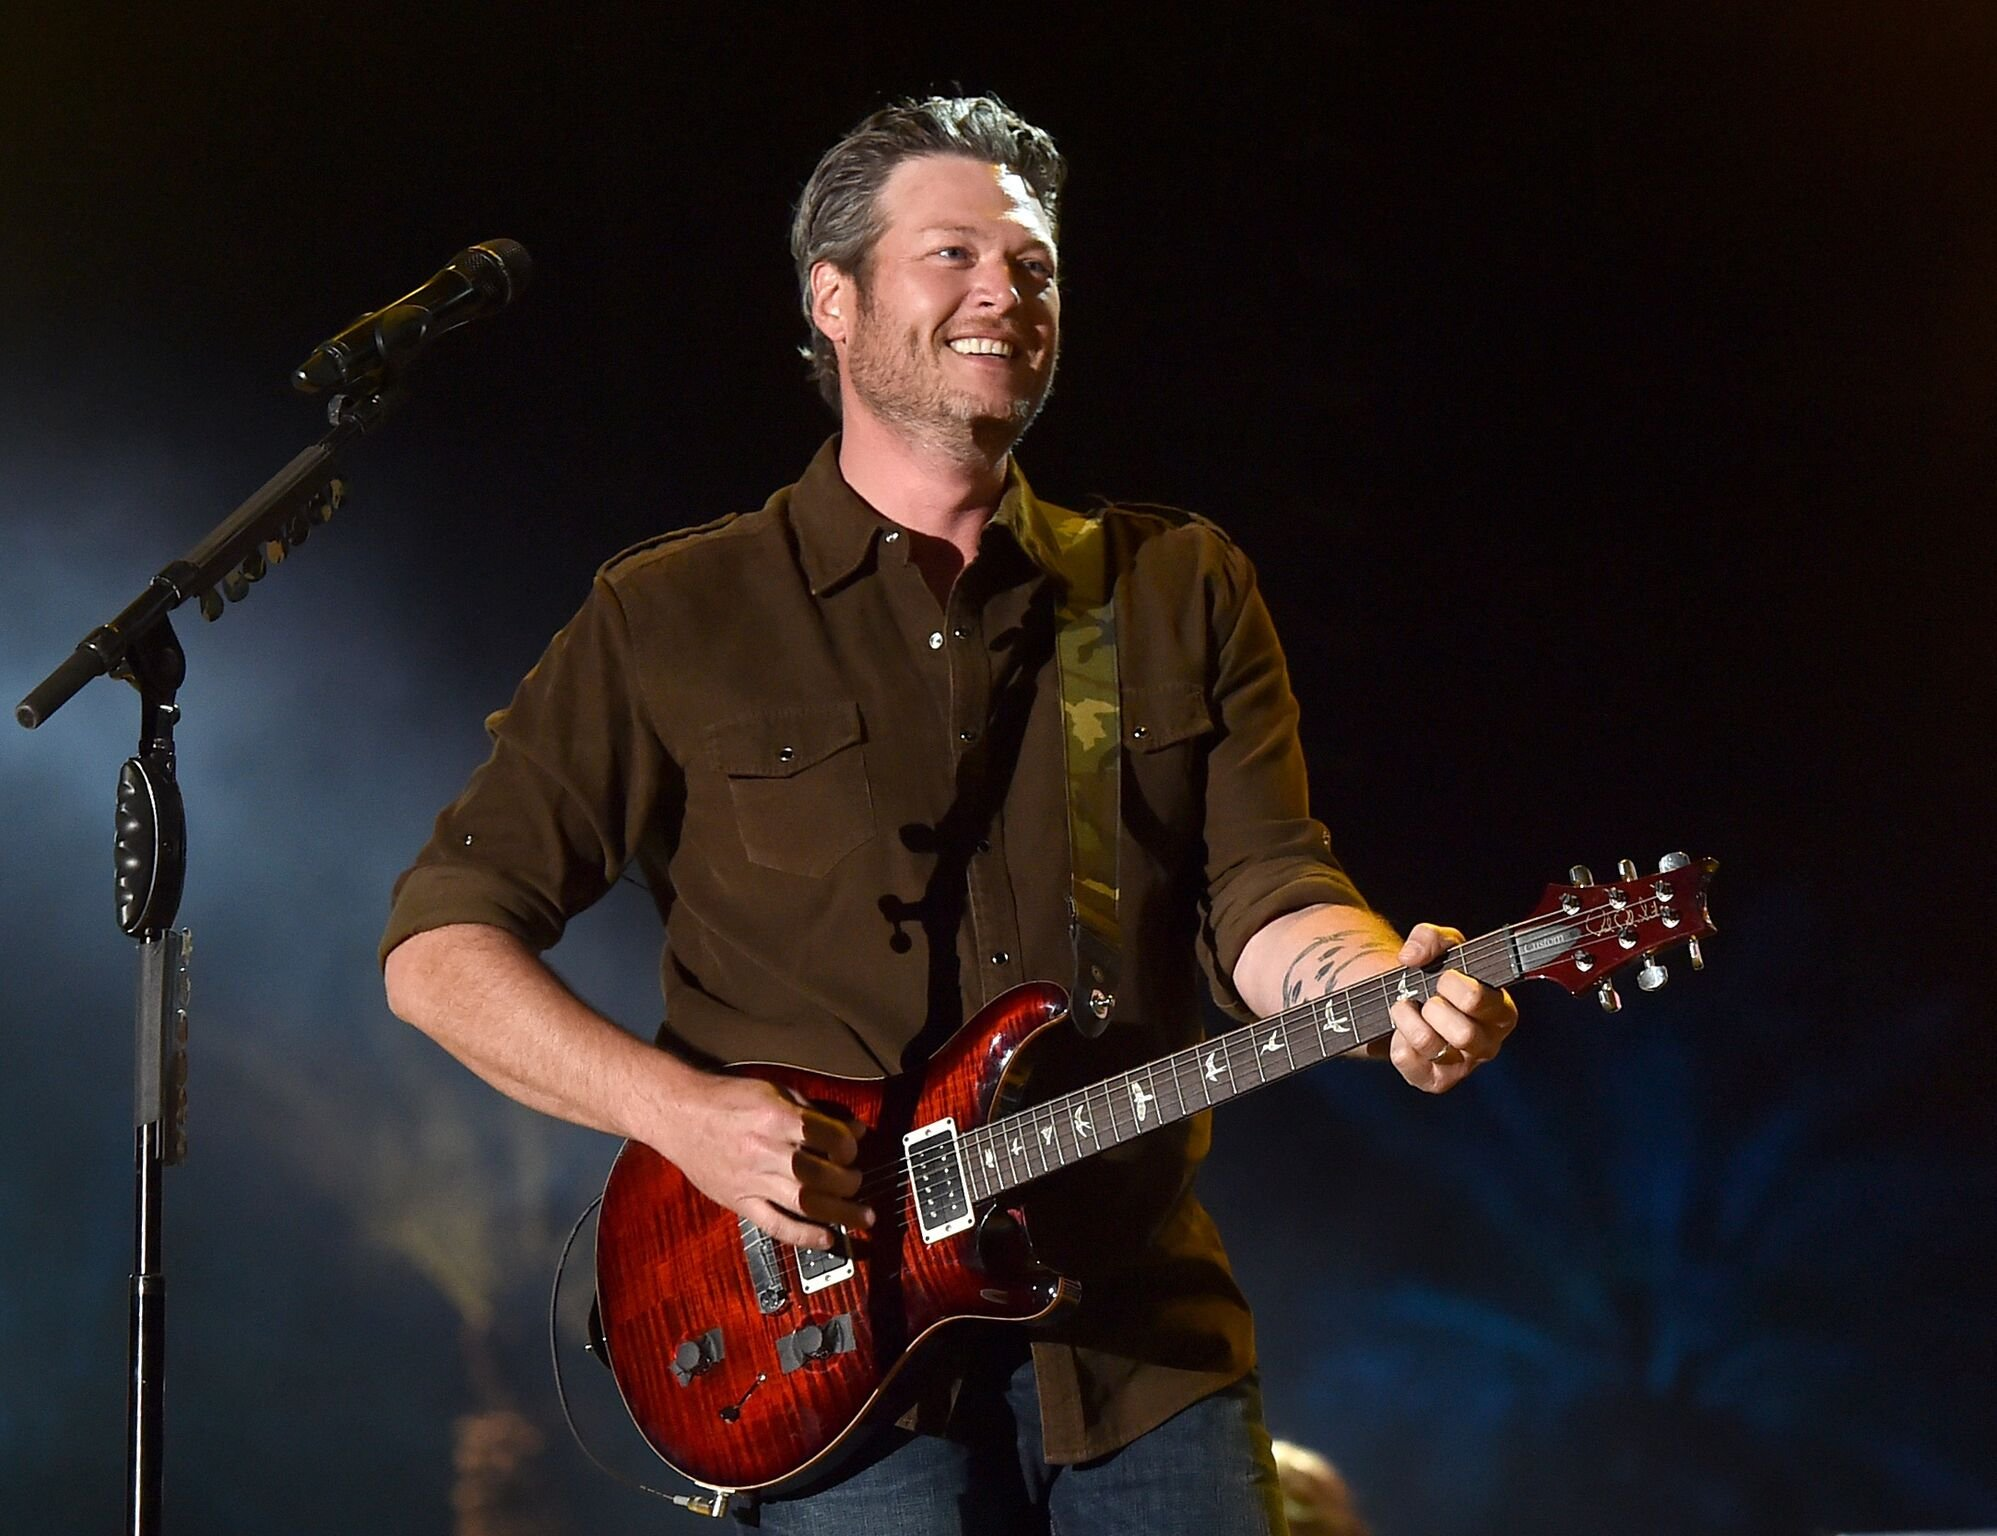 Blake Shelton performs onstage during day three of 2015 Stagecoach, California's Country Music Festival | Getty Images / Global Images Ukraine